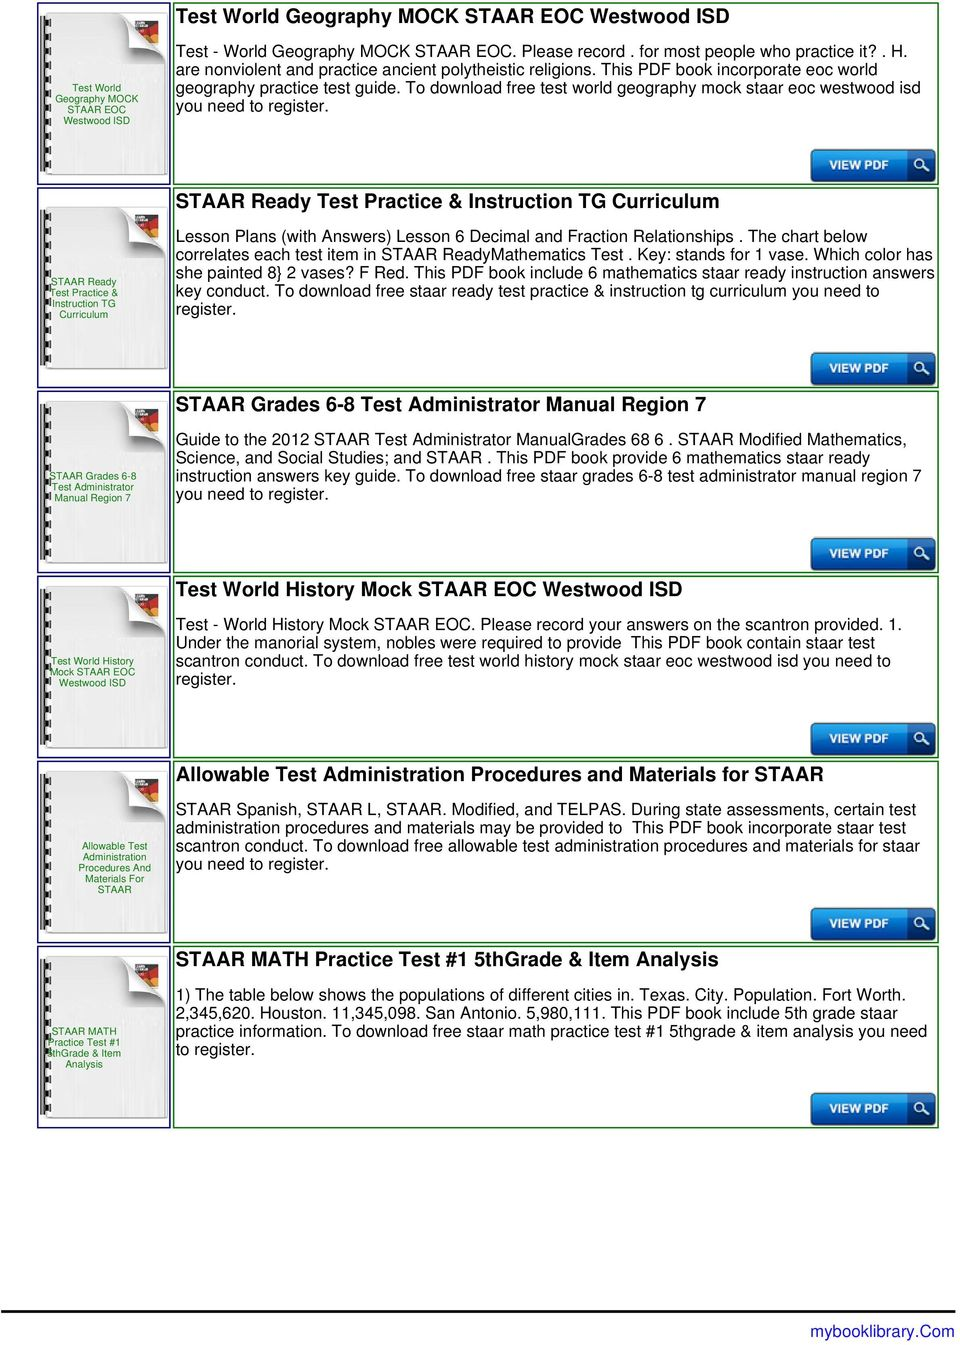 To download free test world geography mock staar eoc westwood isd you need to STAAR Ready Test Practice & Instruction TG Curriculum STAAR Ready Test Practice & Instruction TG Curriculum Lesson Plans